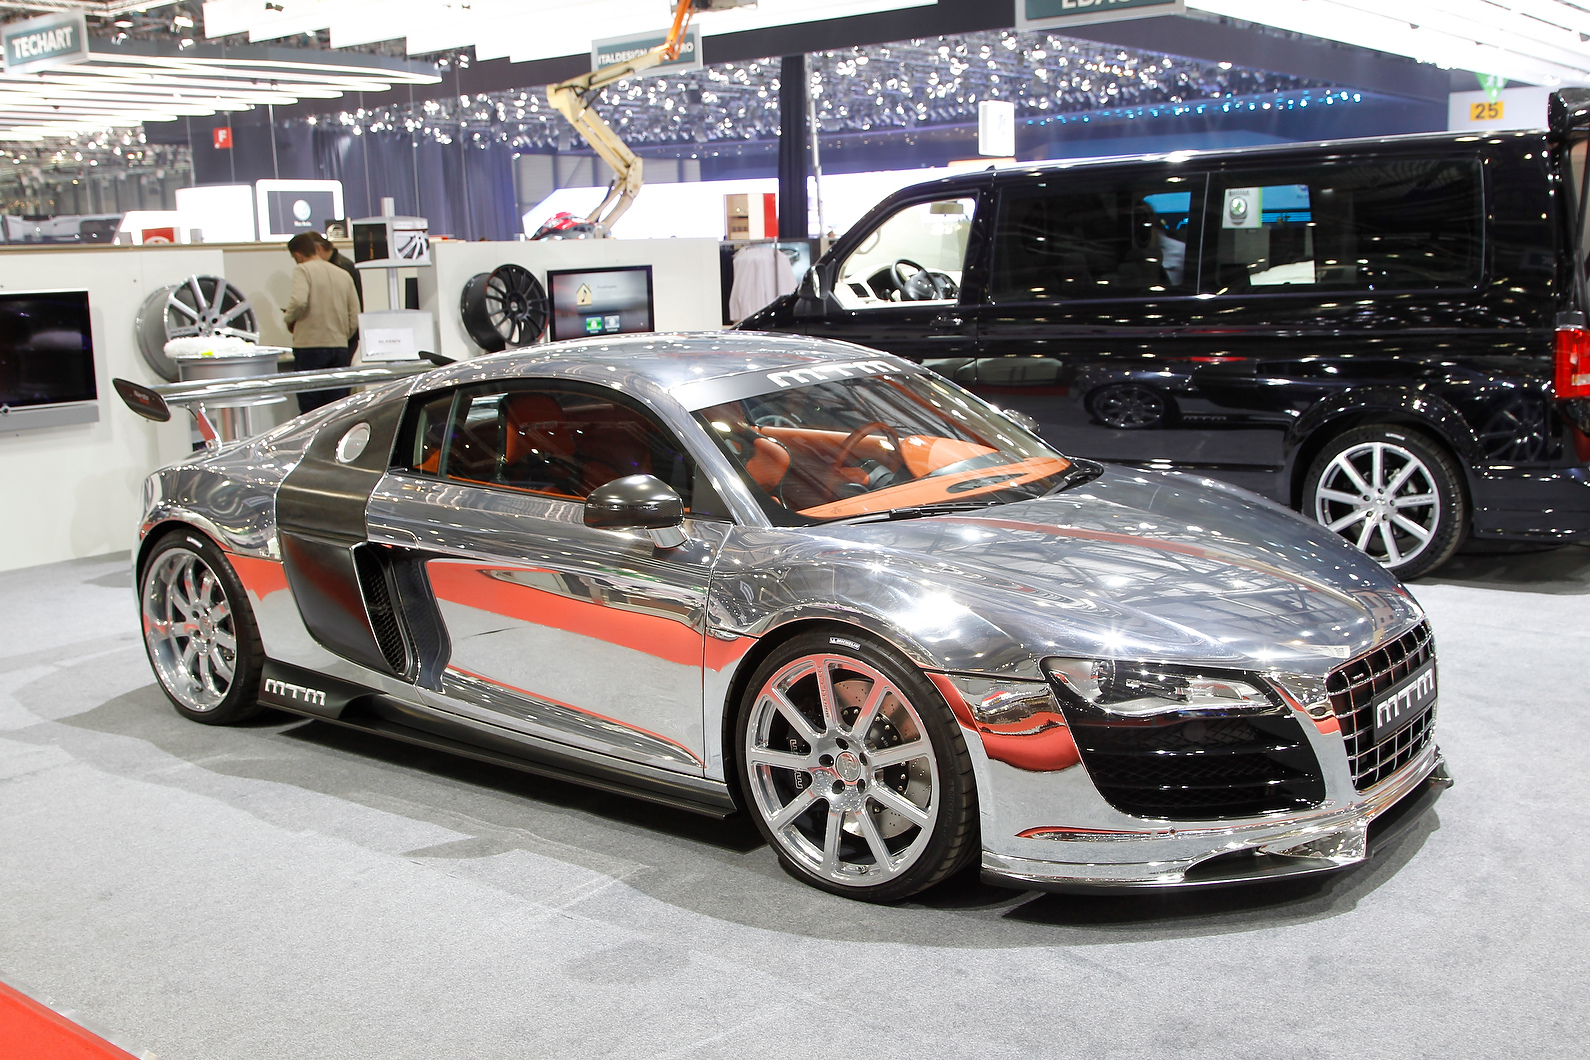 Chrome Audi R8 V10 has been tuned by MTM and features two turbochargers